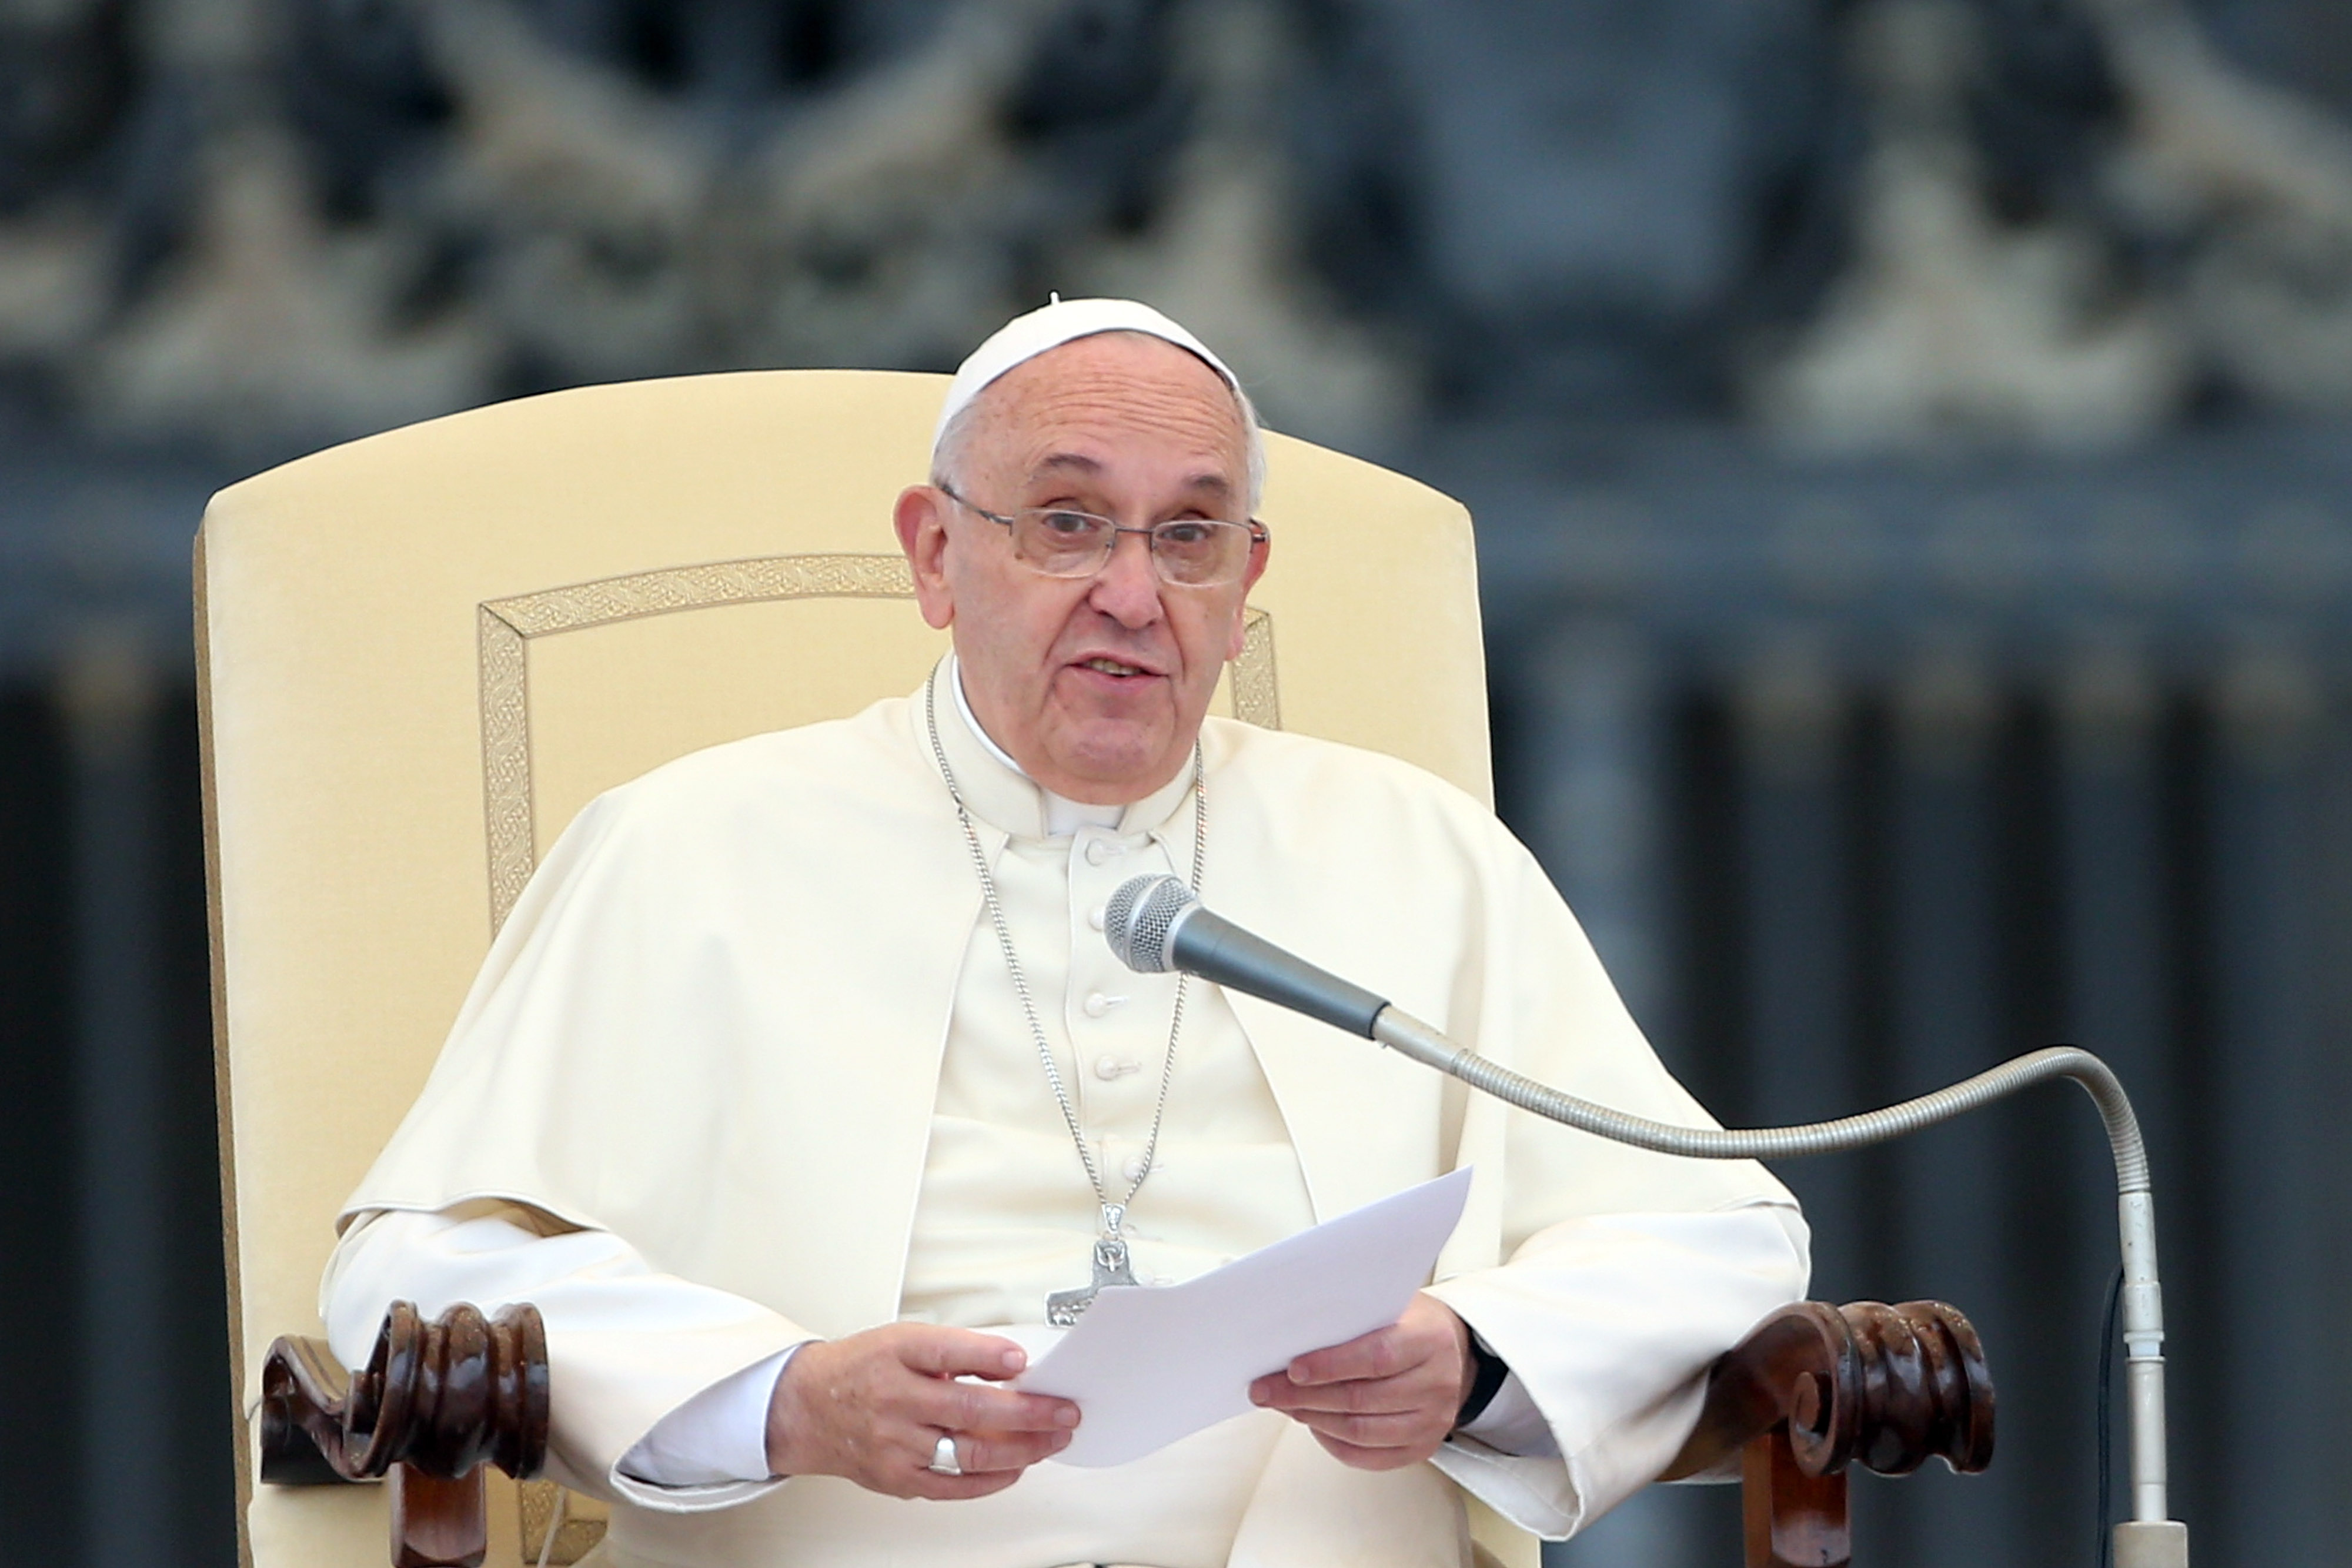 Pope Francis speaks during his weekly audience in St. Peter's square on November 12, 2014 in Vatican City, Vatican. During the event, the Pope asked the clergy to be humble, urging them to be understanding towards their communities and to avoid an authoritarian attitude.